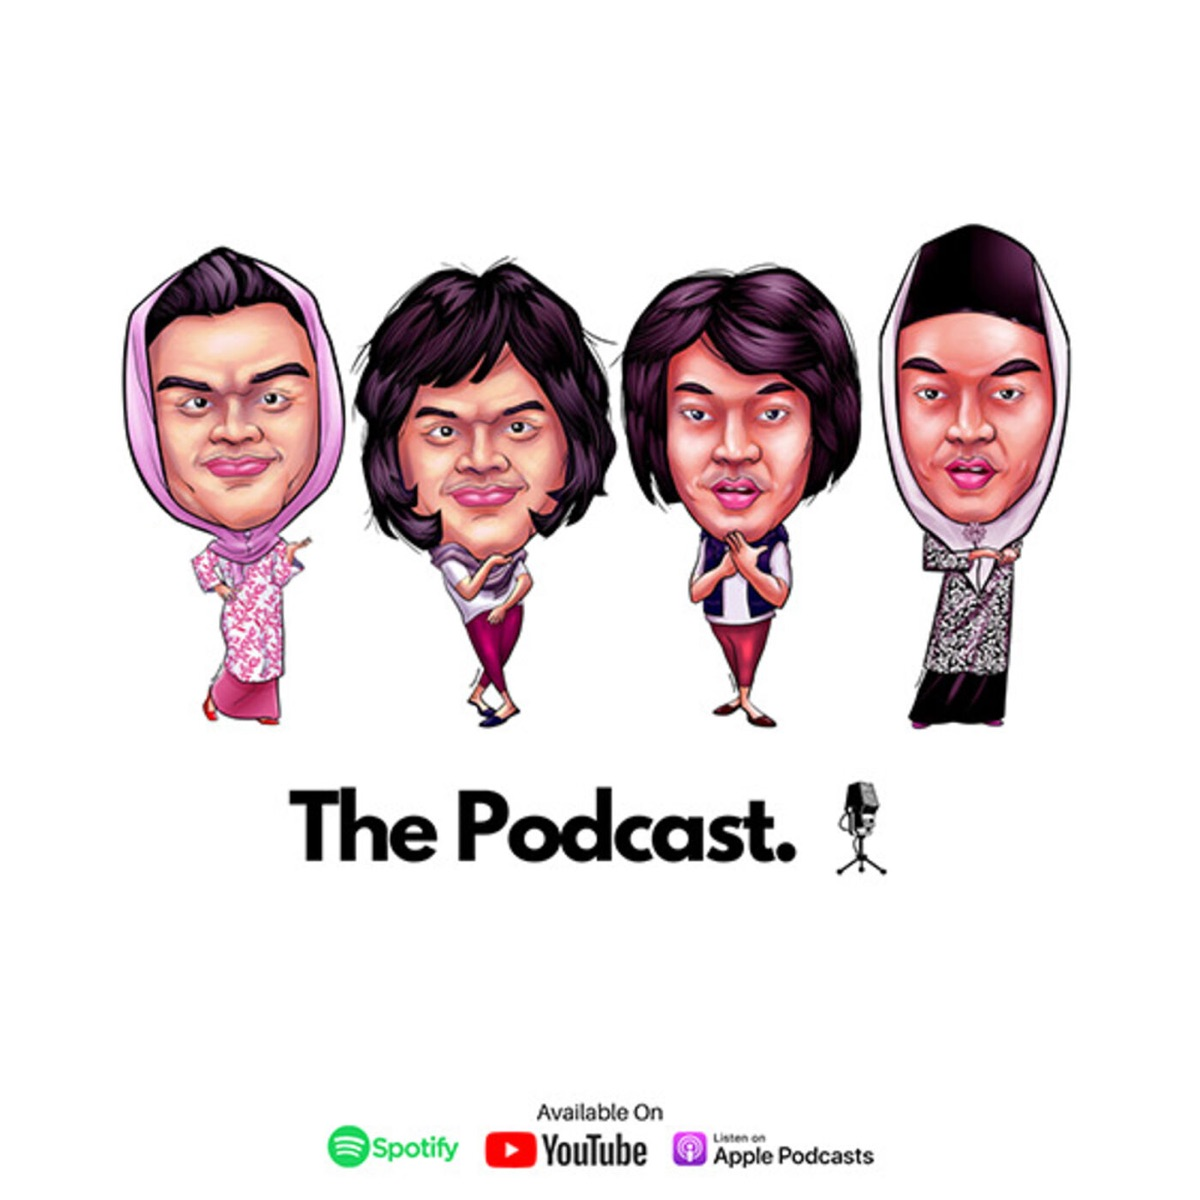 The Podcast